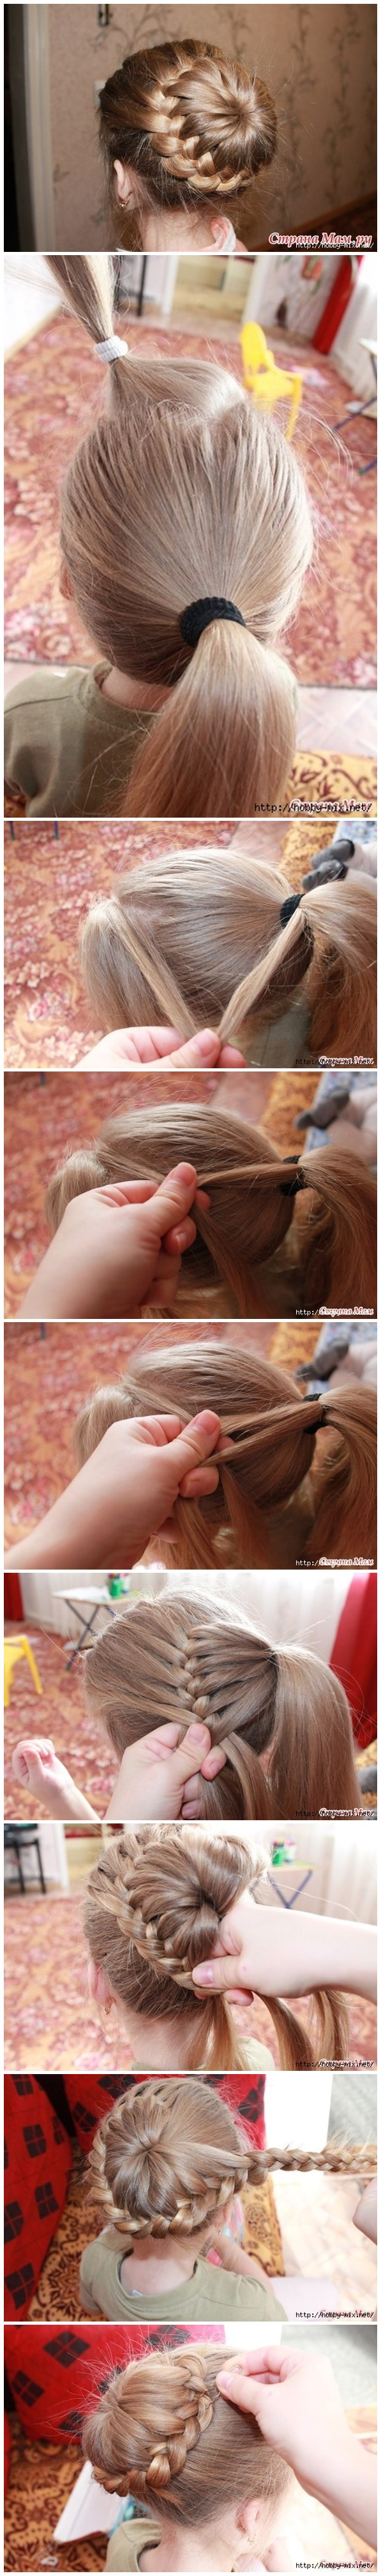 Weaving Braids Around The Tail M Wonderful DIY Beautiful Braids Around The Tail